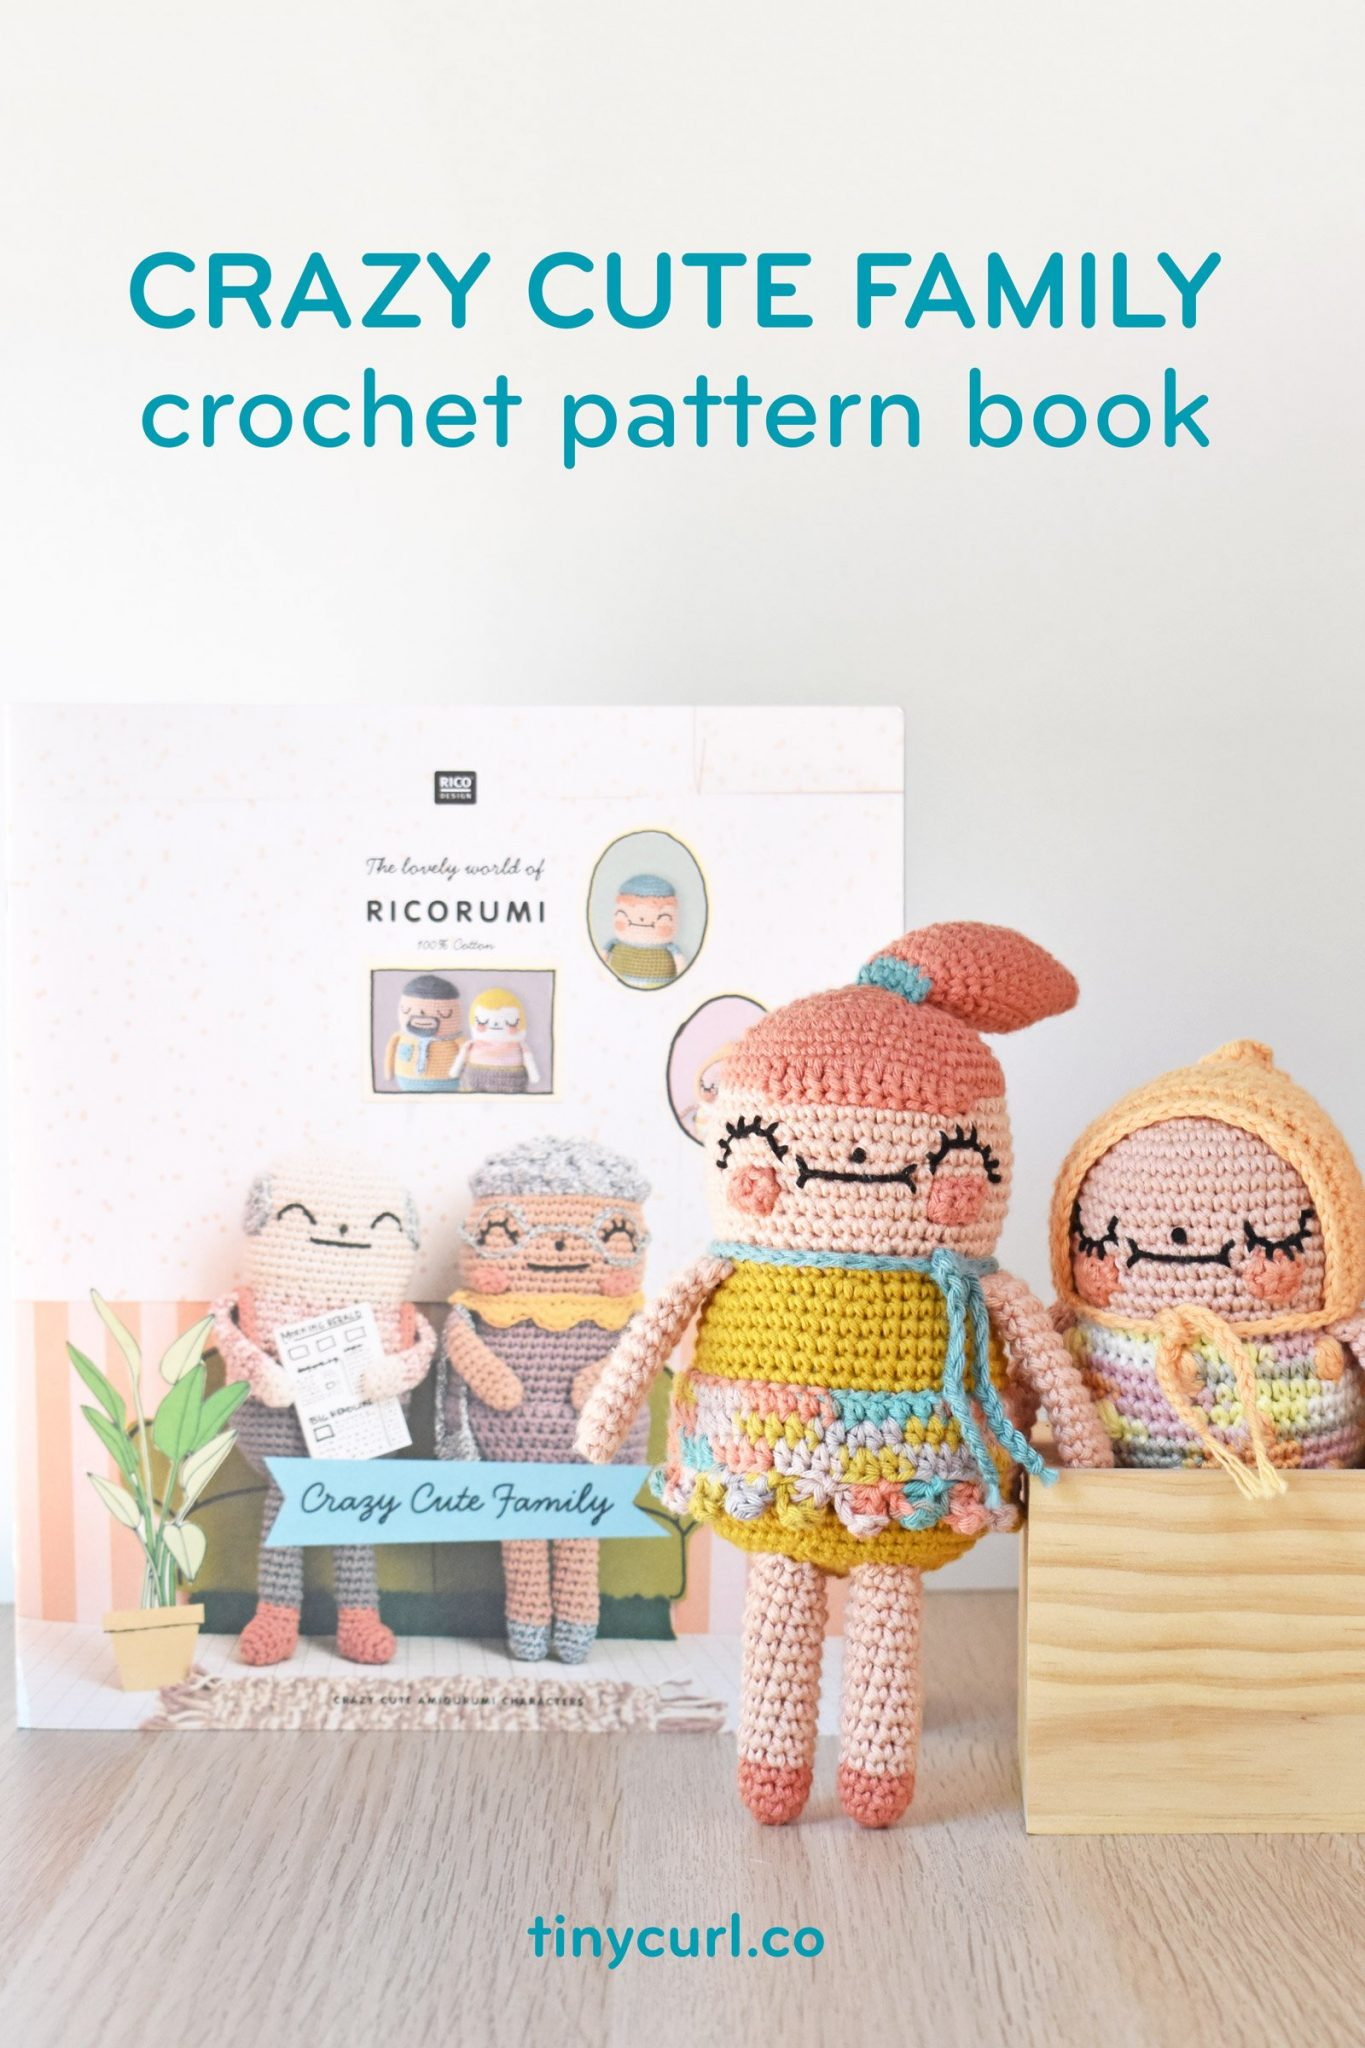 """Crazy Cute Family crochet pattern book"" over photo of a crochet girl and baby. They are propped in front of the pattern book."